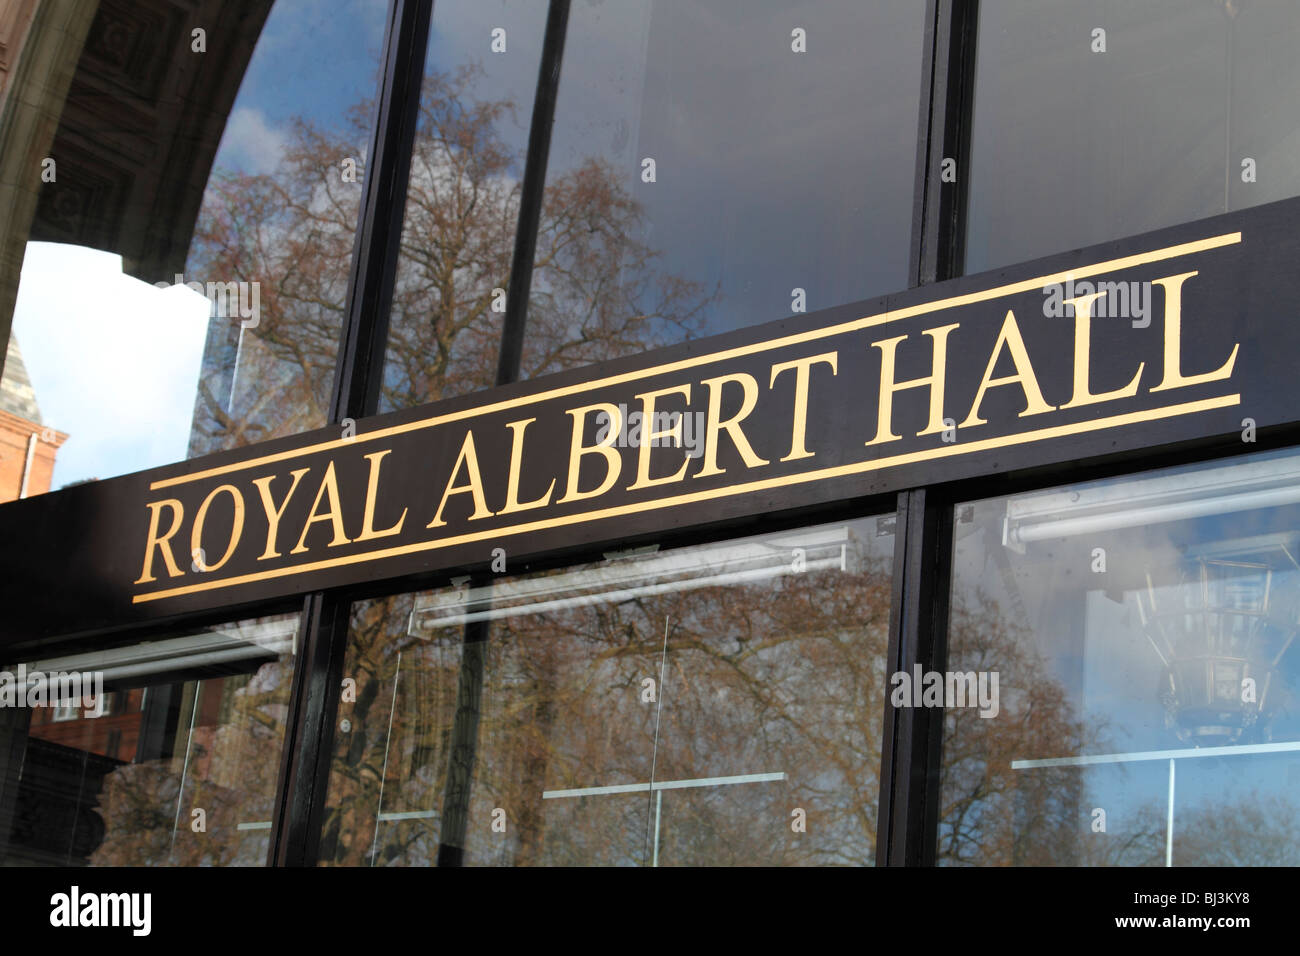 Entrance to the royal albert hall london stock photo for Door 8 royal albert hall